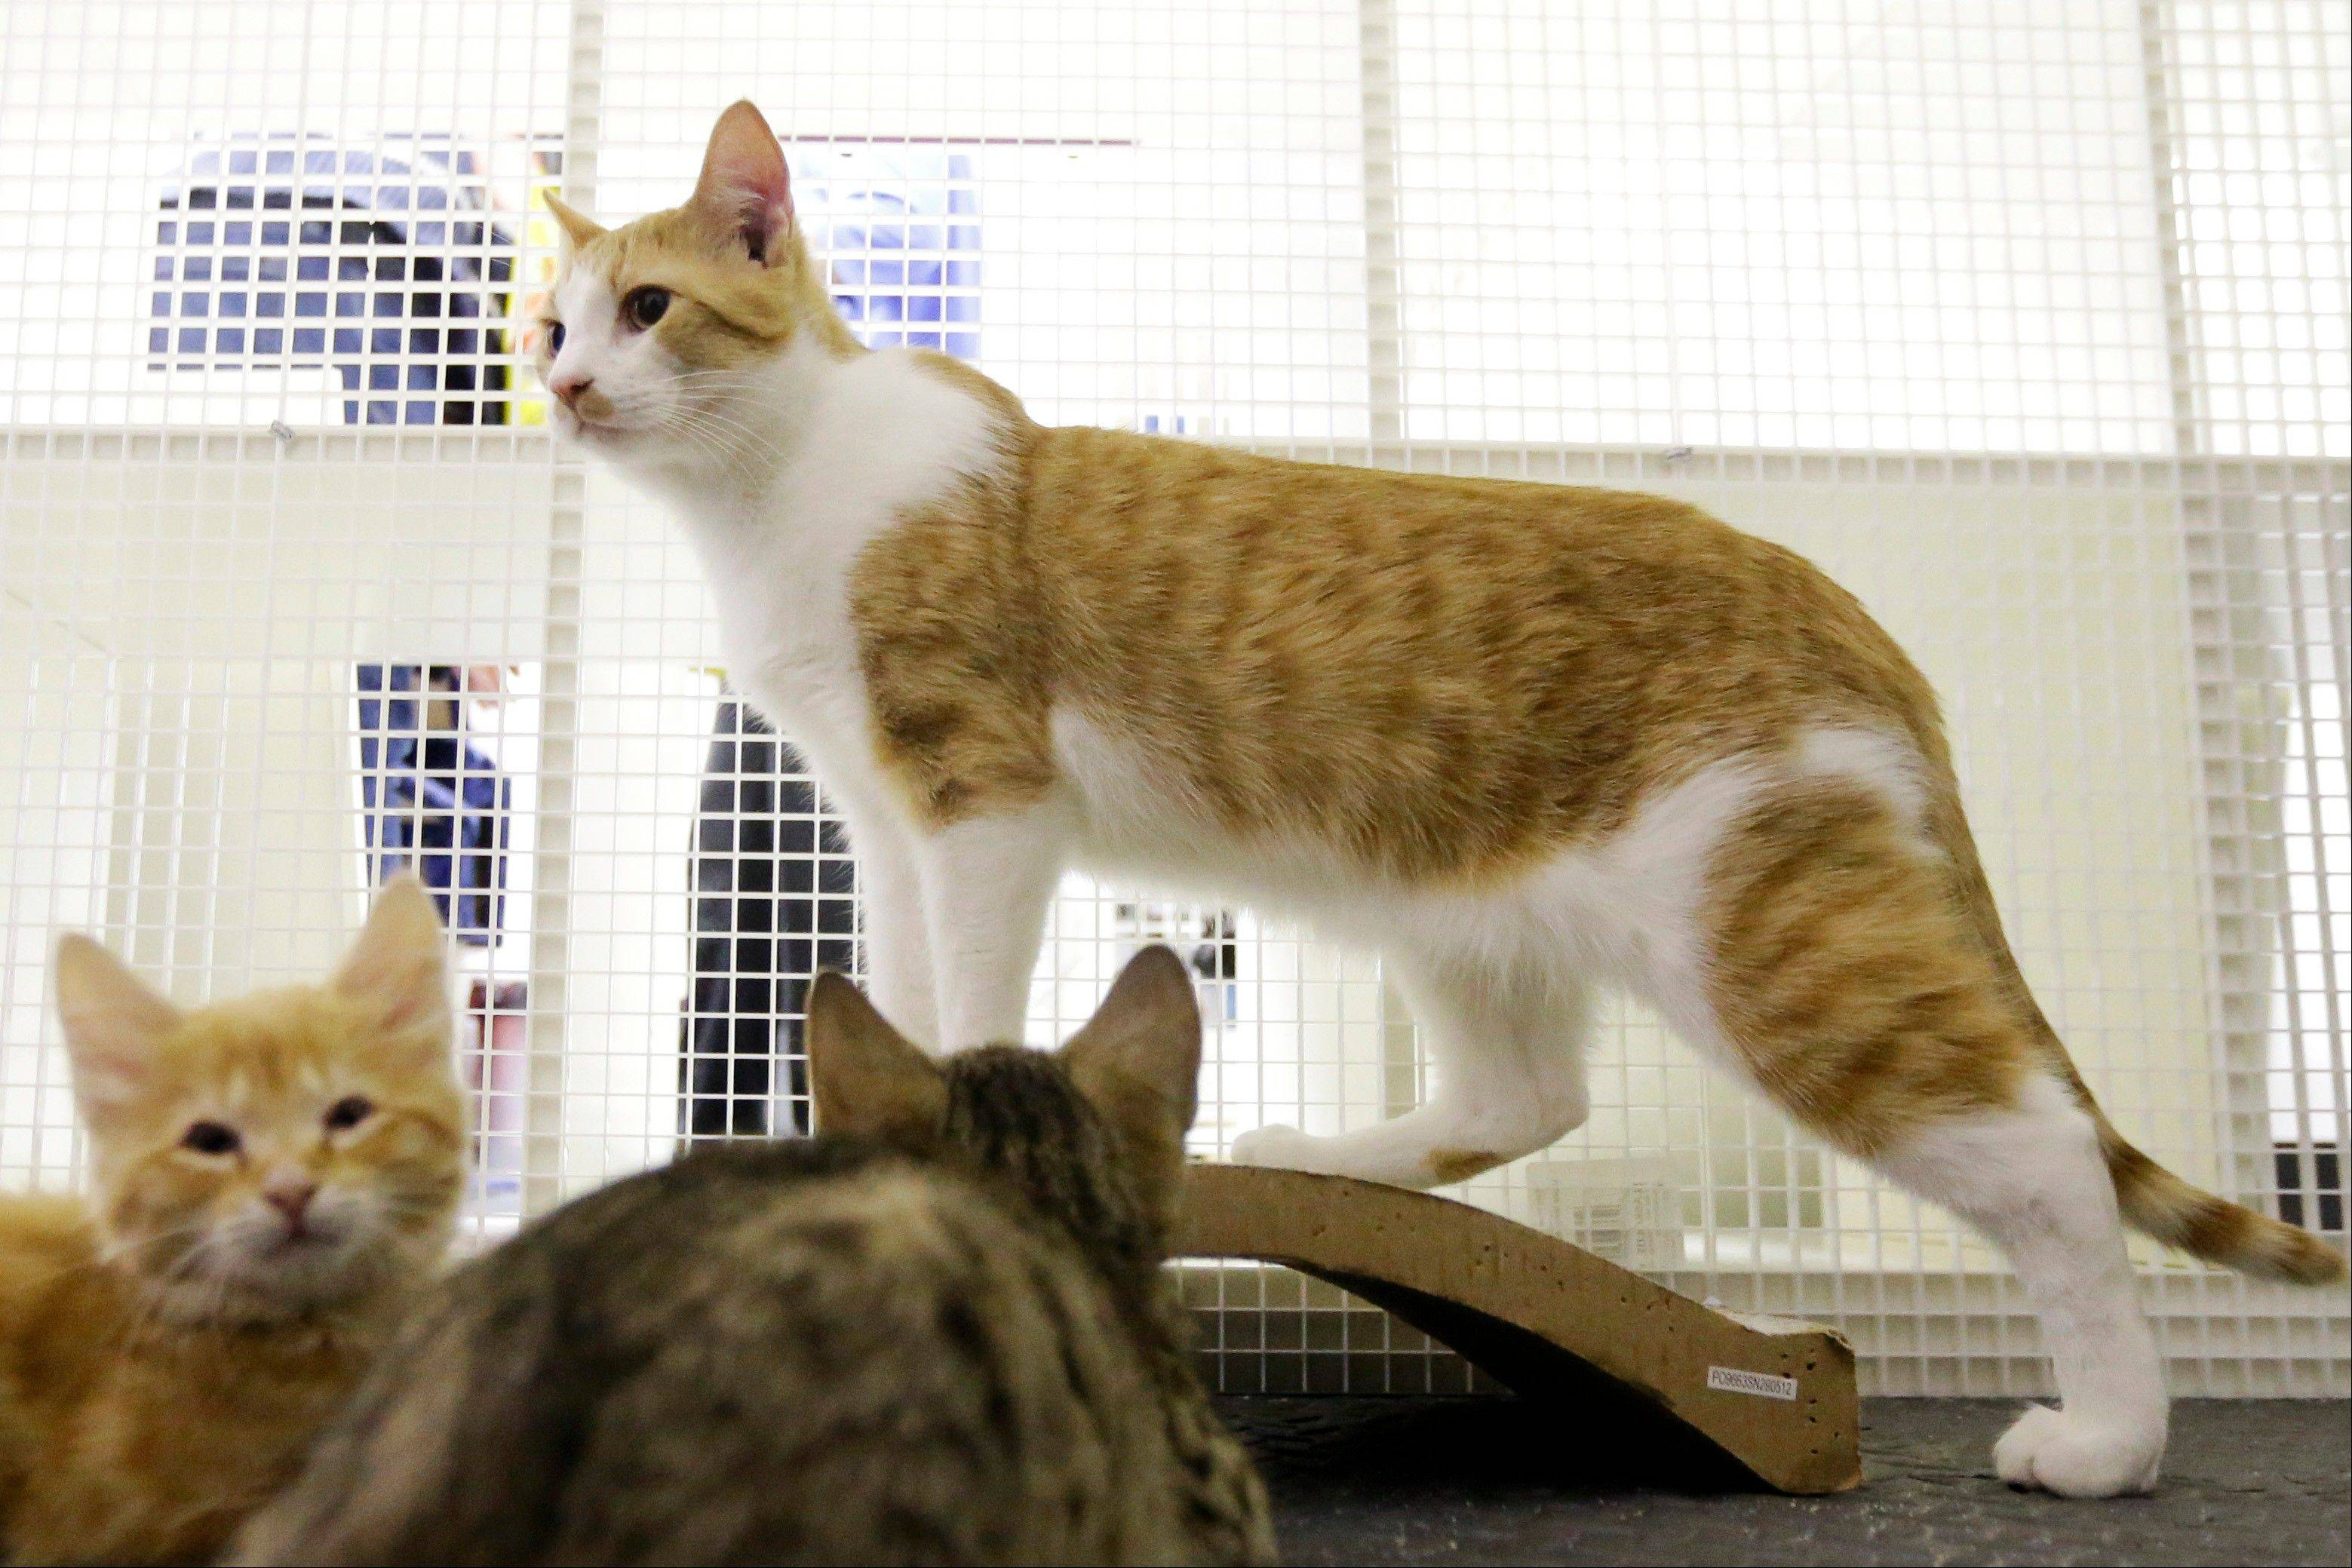 A cat and kittens who were displaced due to fires are seen Thursday, March 28, at Red Paw's adoption facility in Philadelphia. The emergency relief service Red Paw has paired with the local Red Cross to care for animals displaced by flames, floods or other residential disasters.